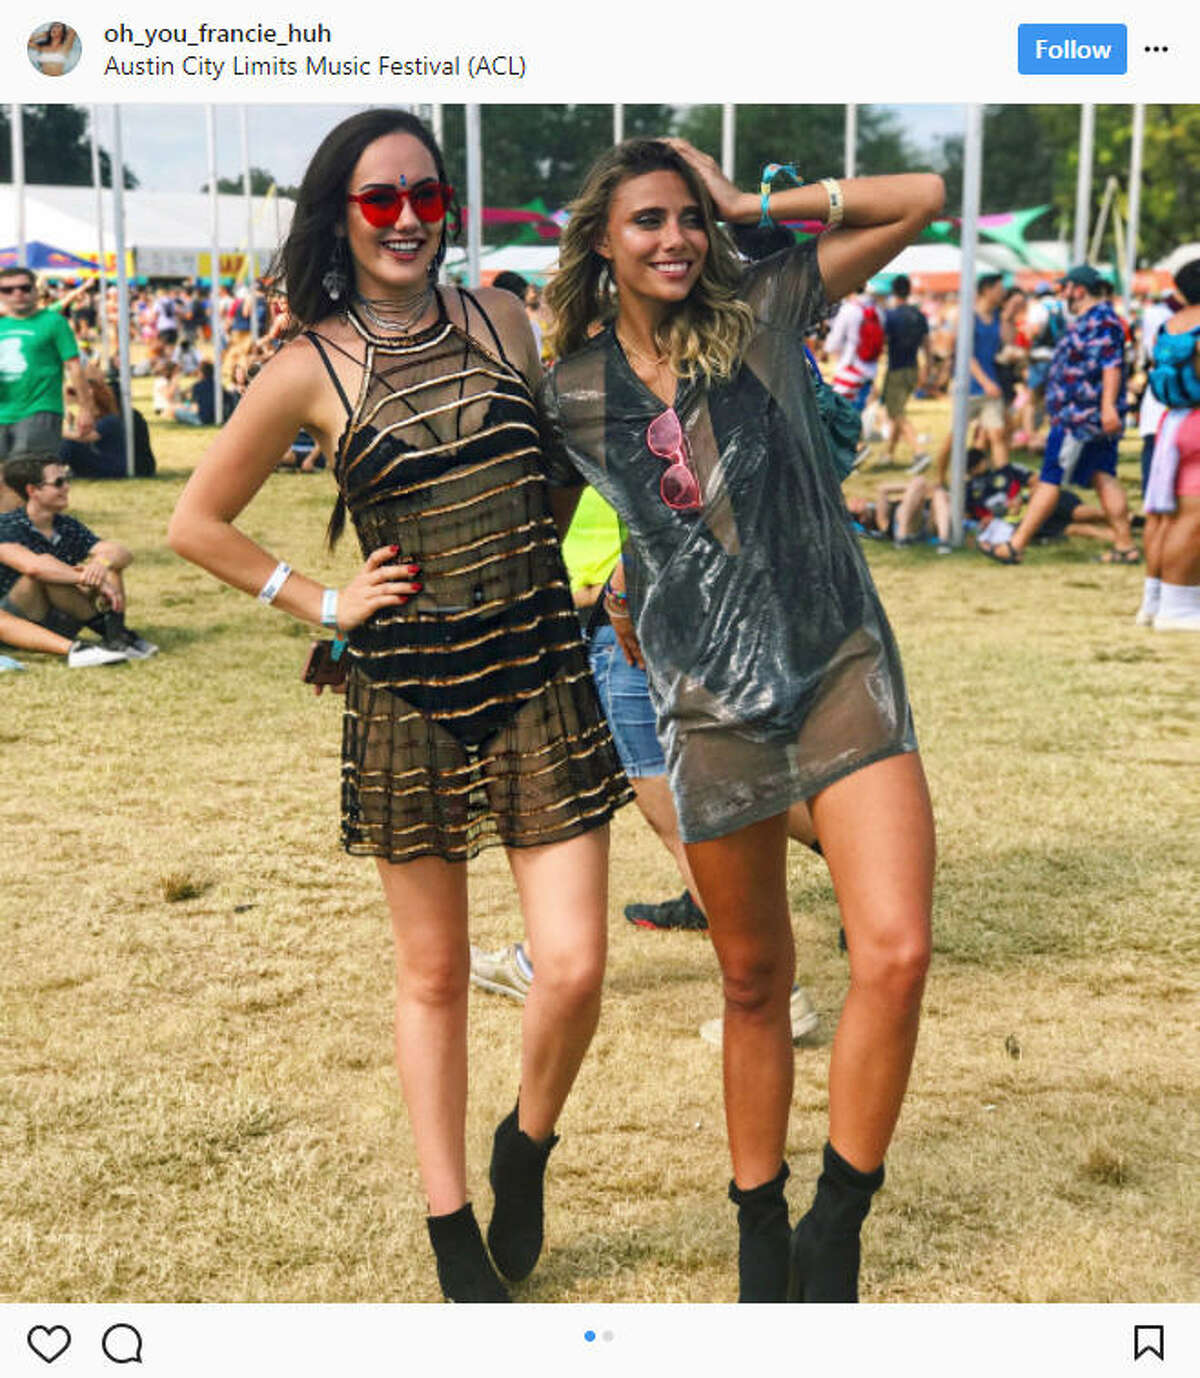 Thousands of people flocked to Zilker Park in Austin for the annual Austin City Limits Music Festival during the first two weekends of October 2017.Source: Instagram